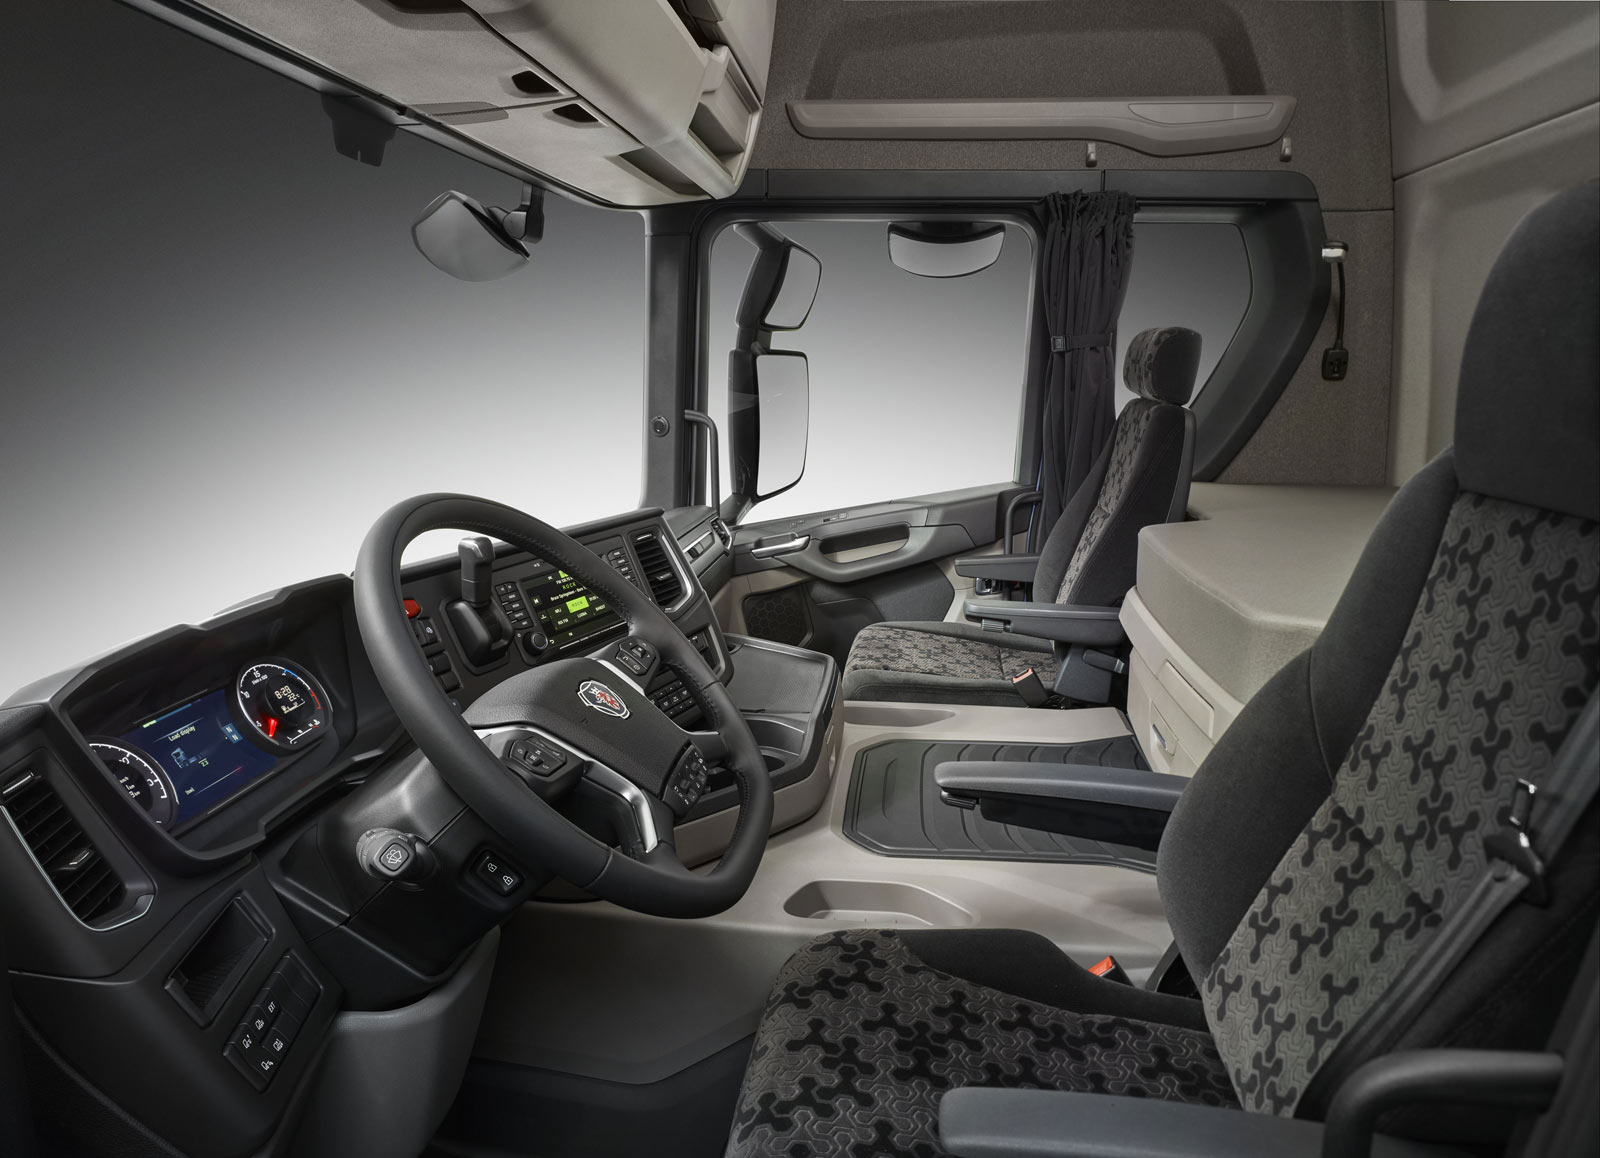 Scania G Series 4th Generation Commercial Vehicles